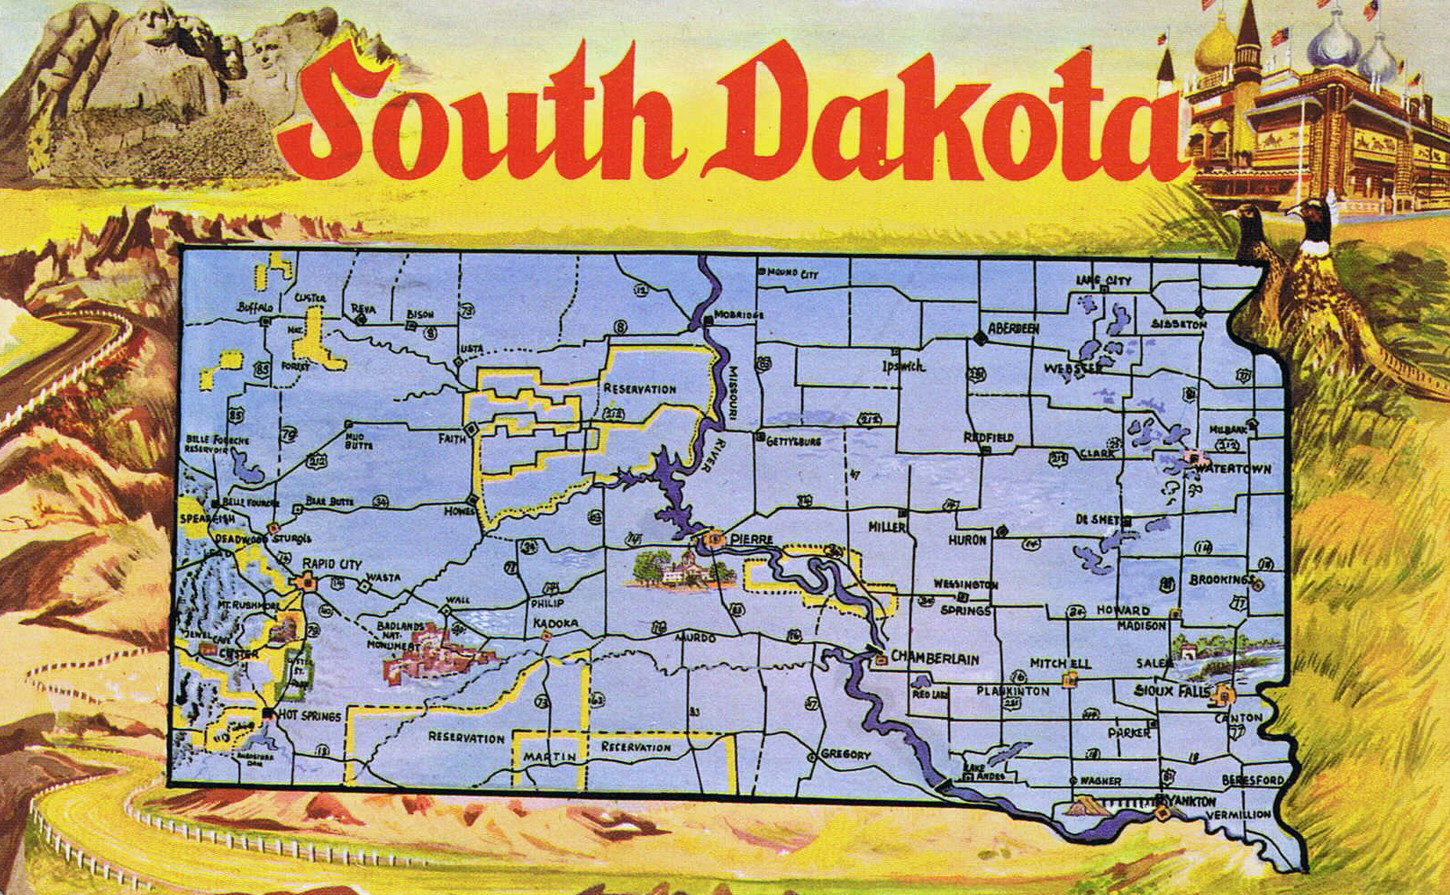 Large tourist illustrated map of South Dakota state – South Dakota Tourist Map